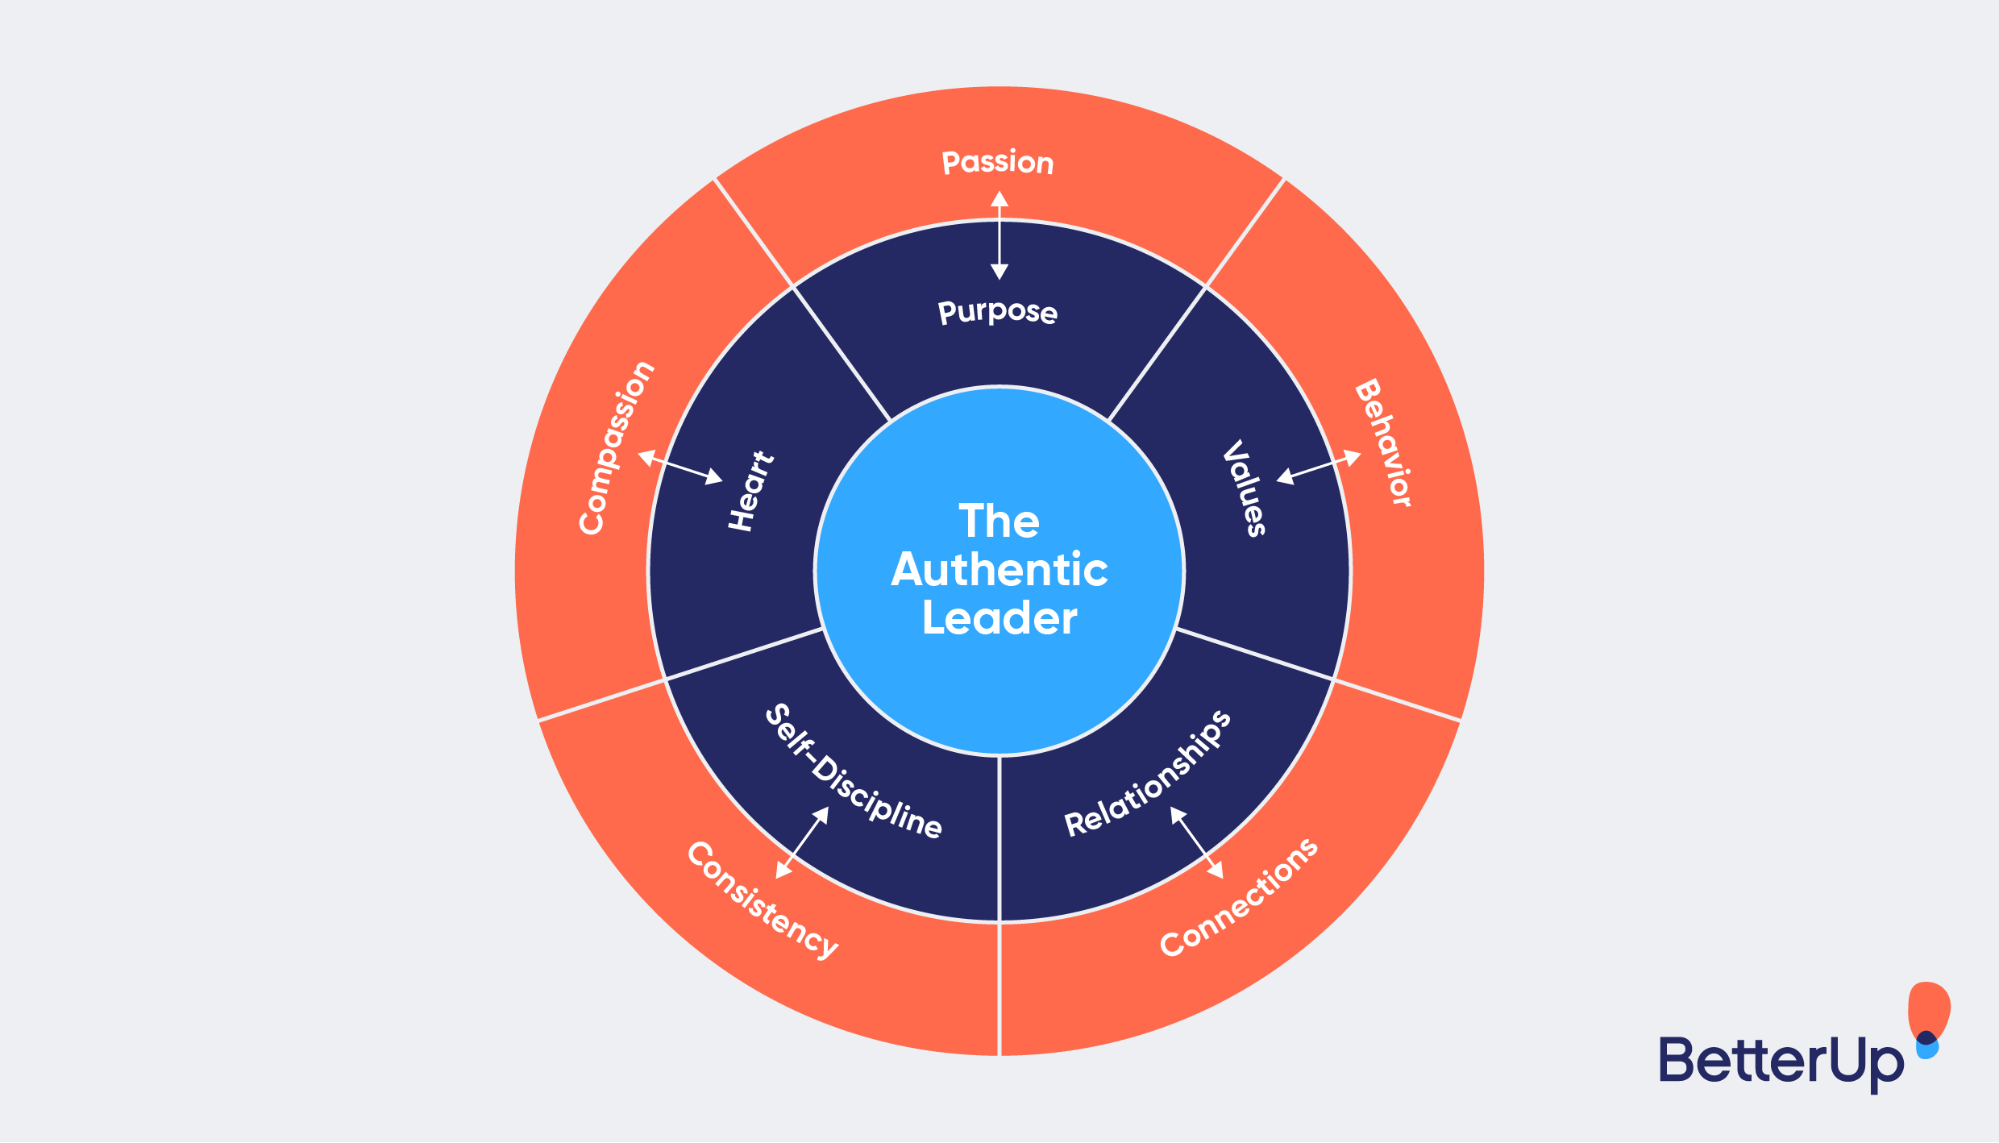 Image-showing-5-characteristics-of-an-authentic-leader-leadership-challenges